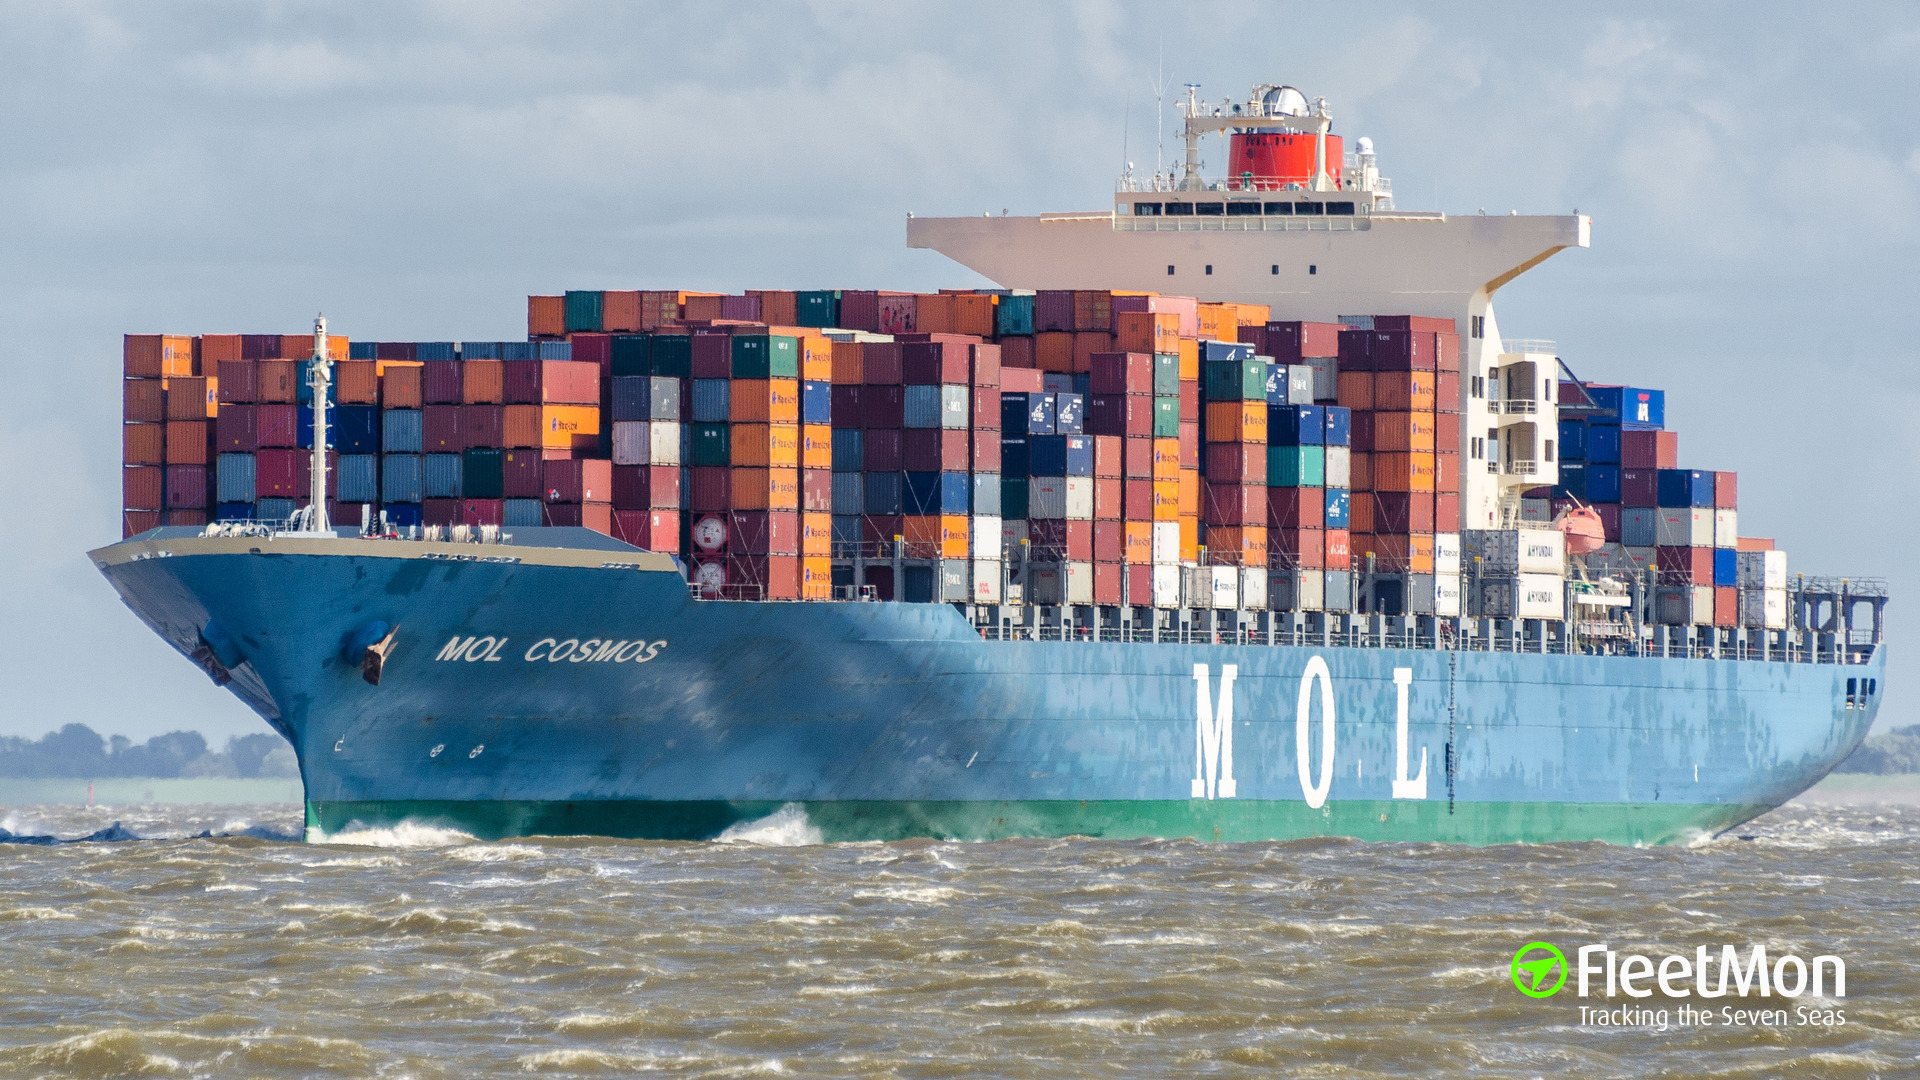 Boxship MOL Cosmos in trouble in Arabian sea